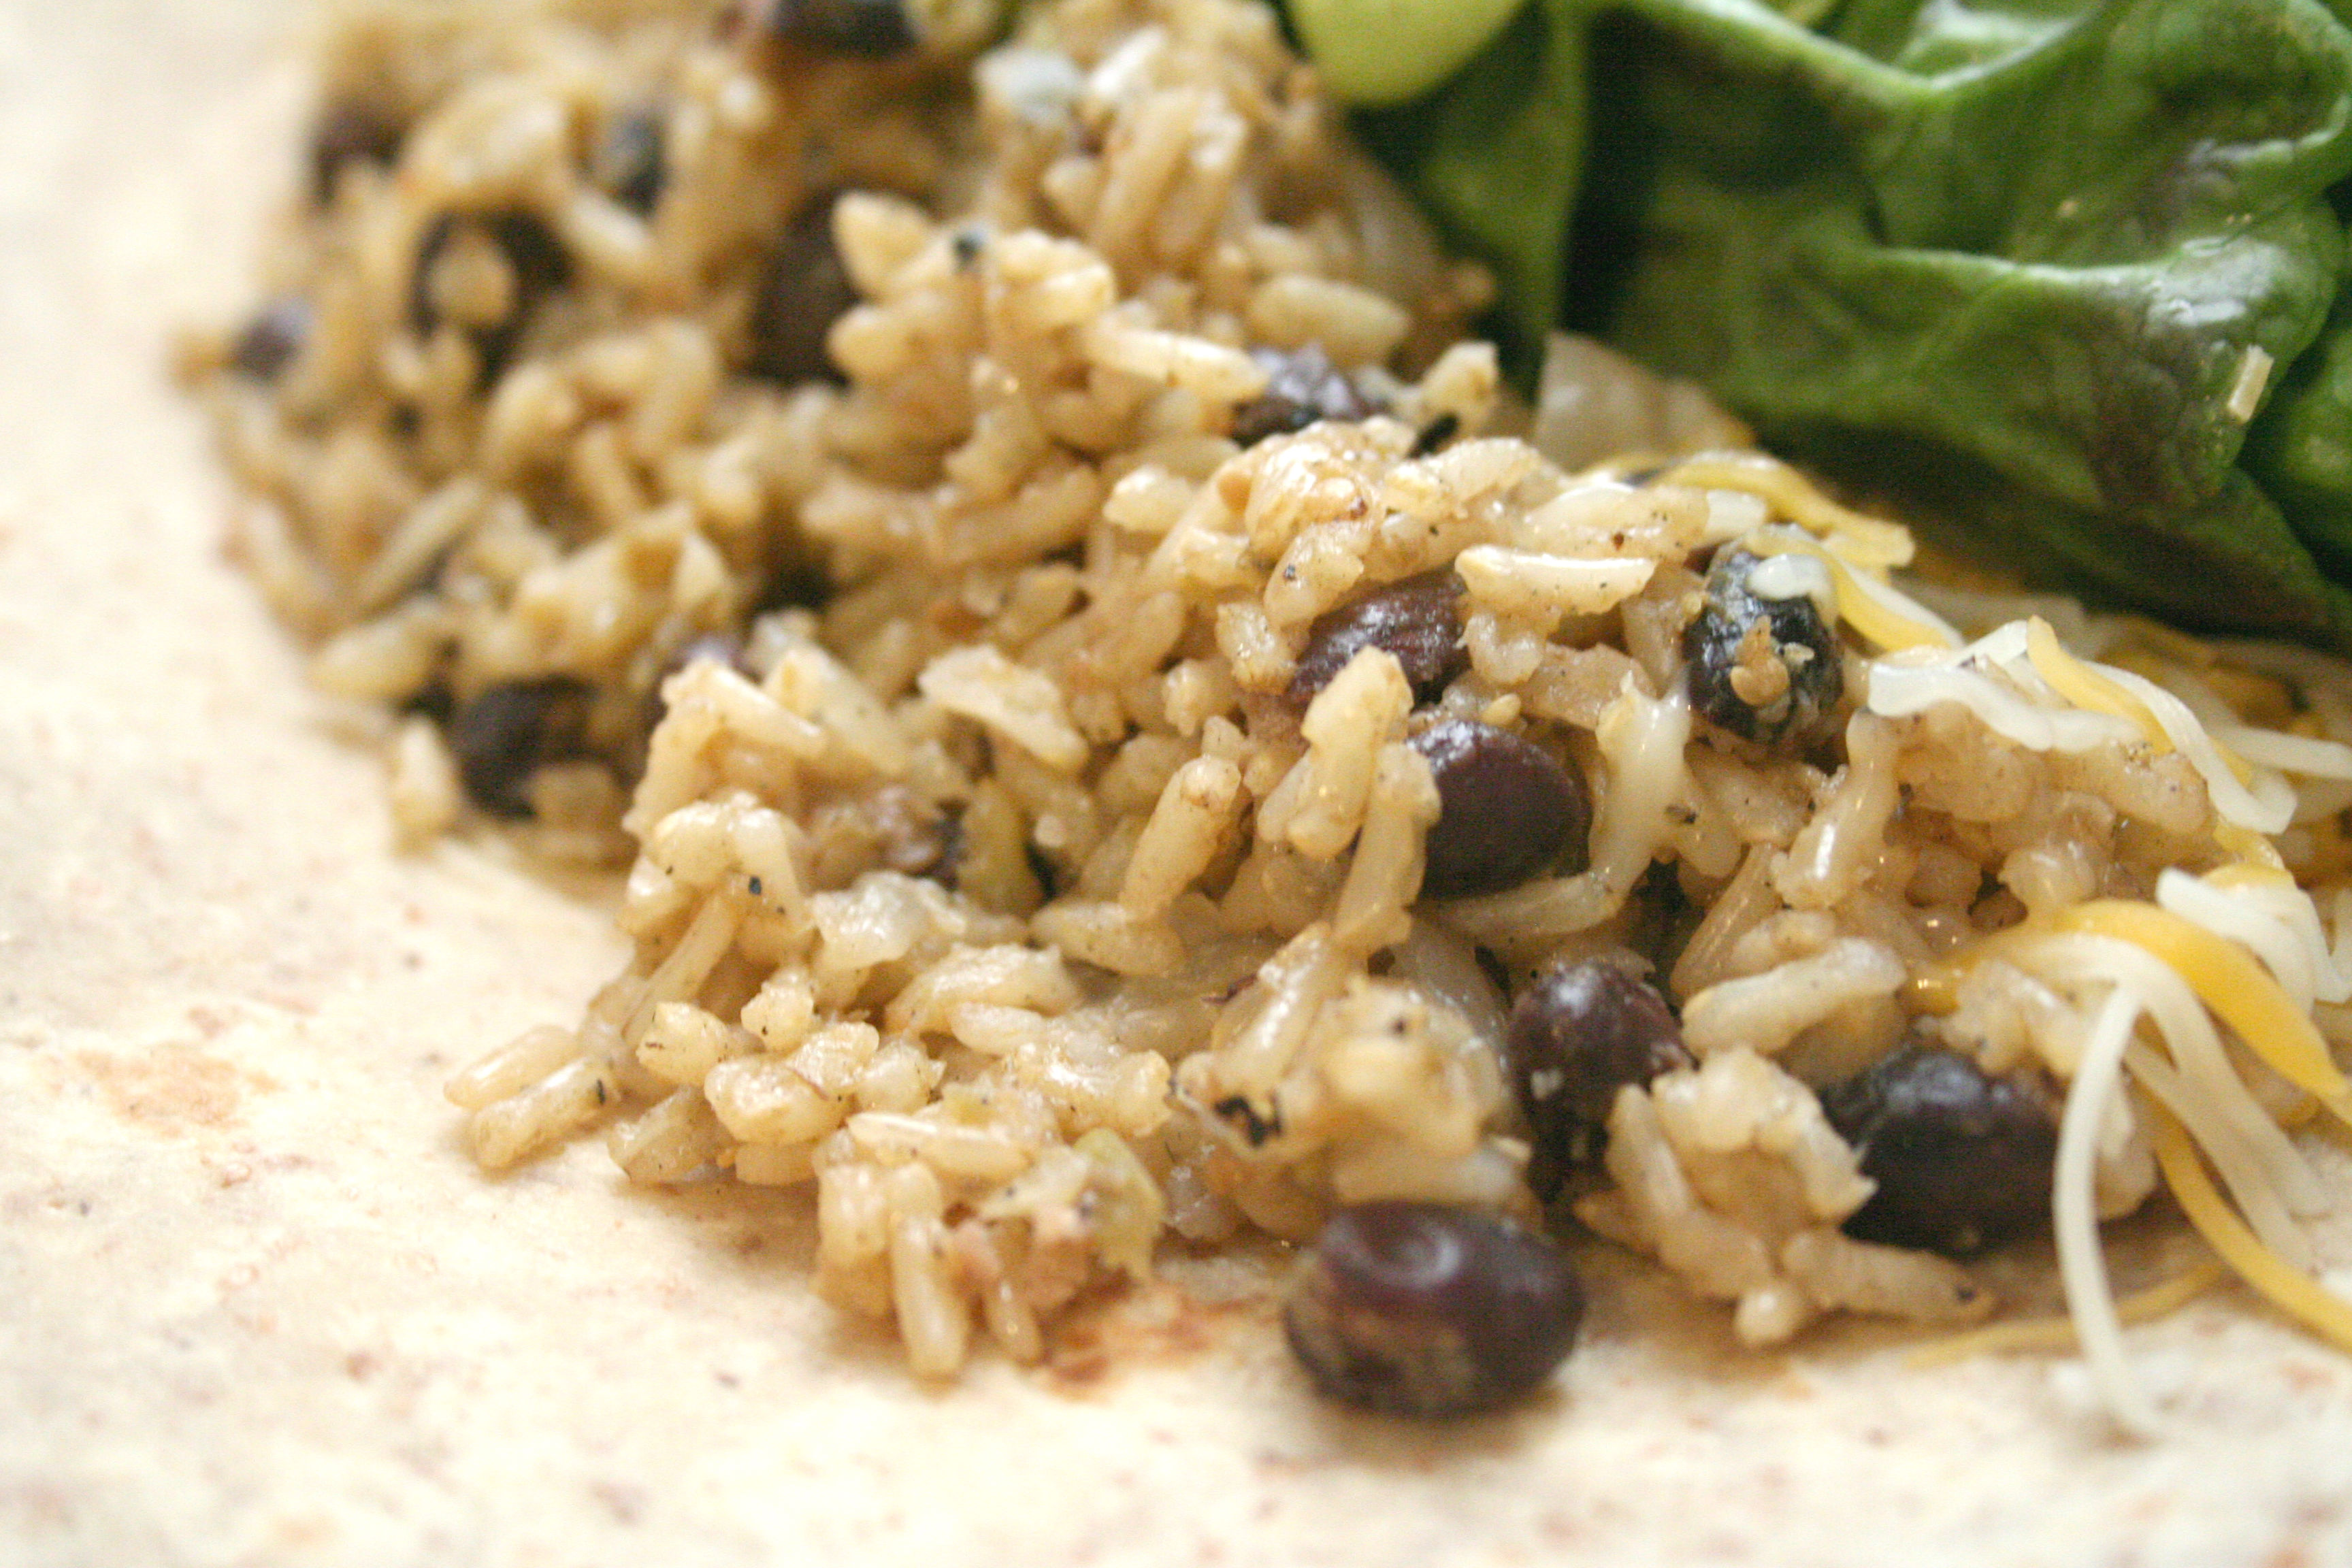 Green Rice & Black Beans